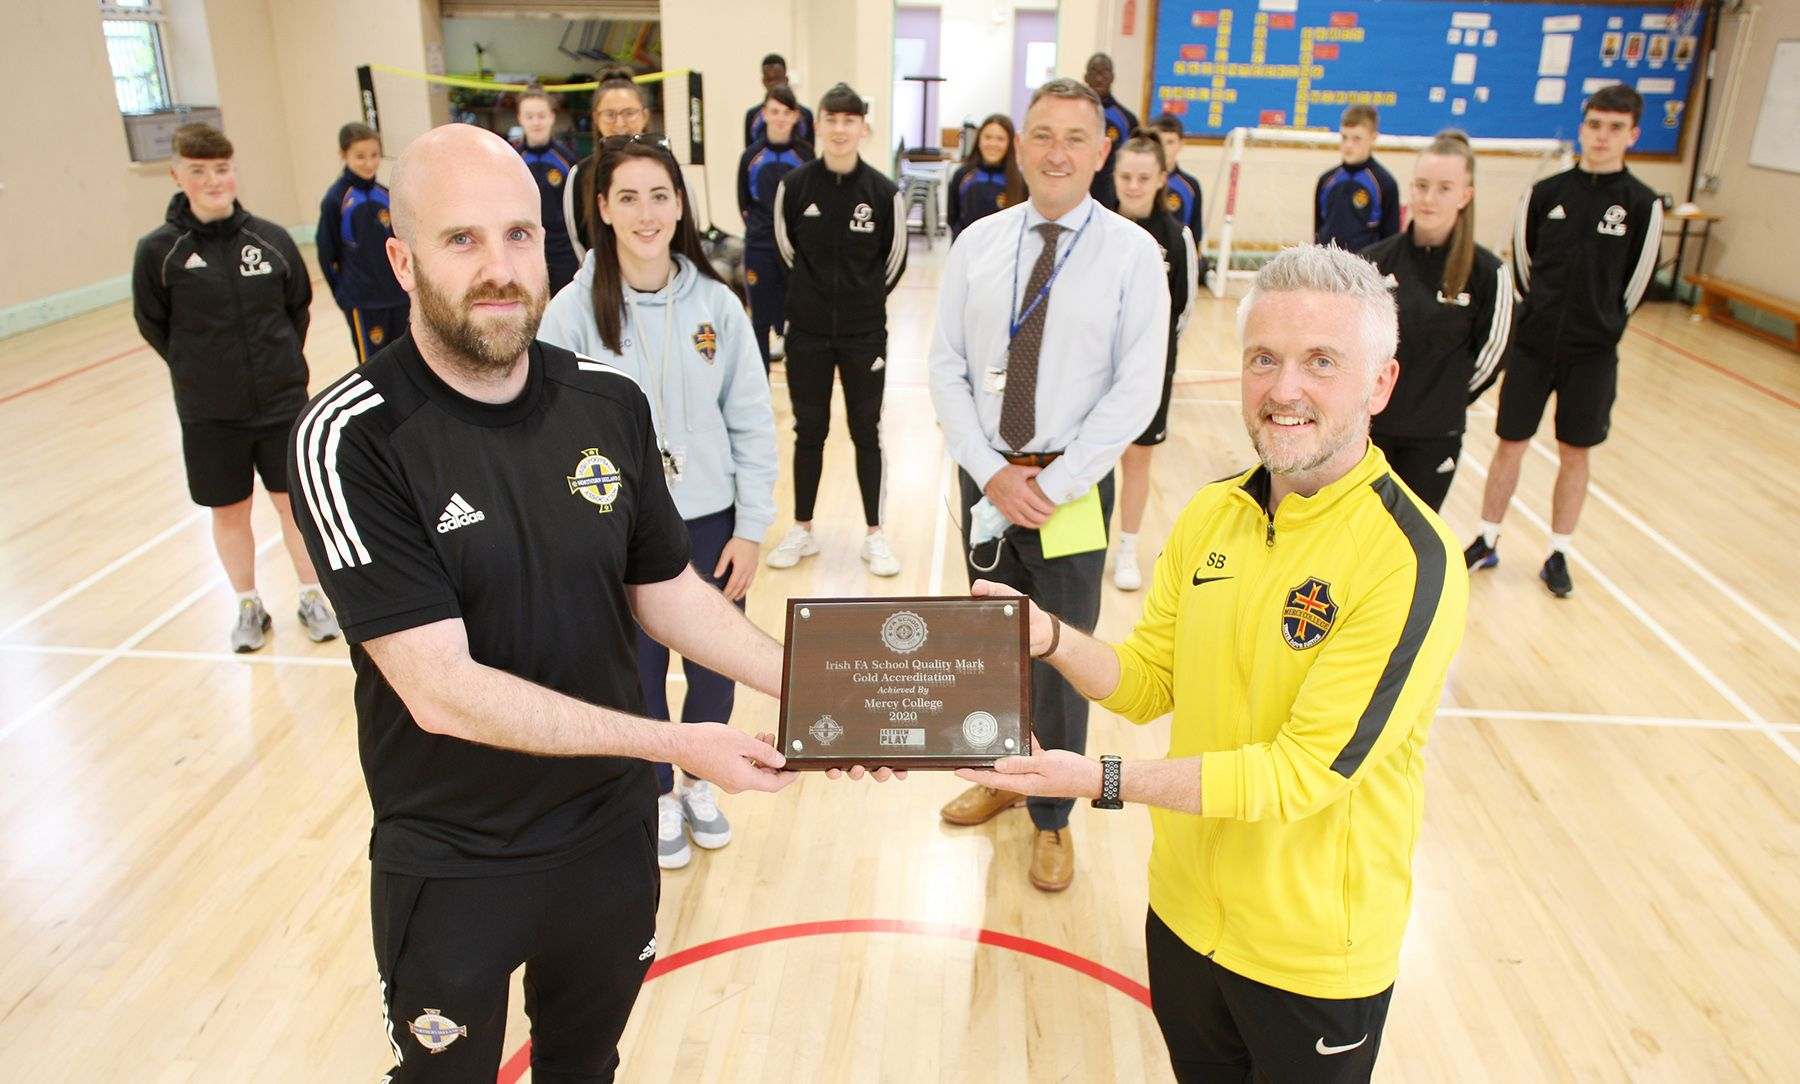 CONGRATS: Damien McLaughlin from the Irish FA presents Séadna Billings, Head Coach of Football at Mercy College with the award